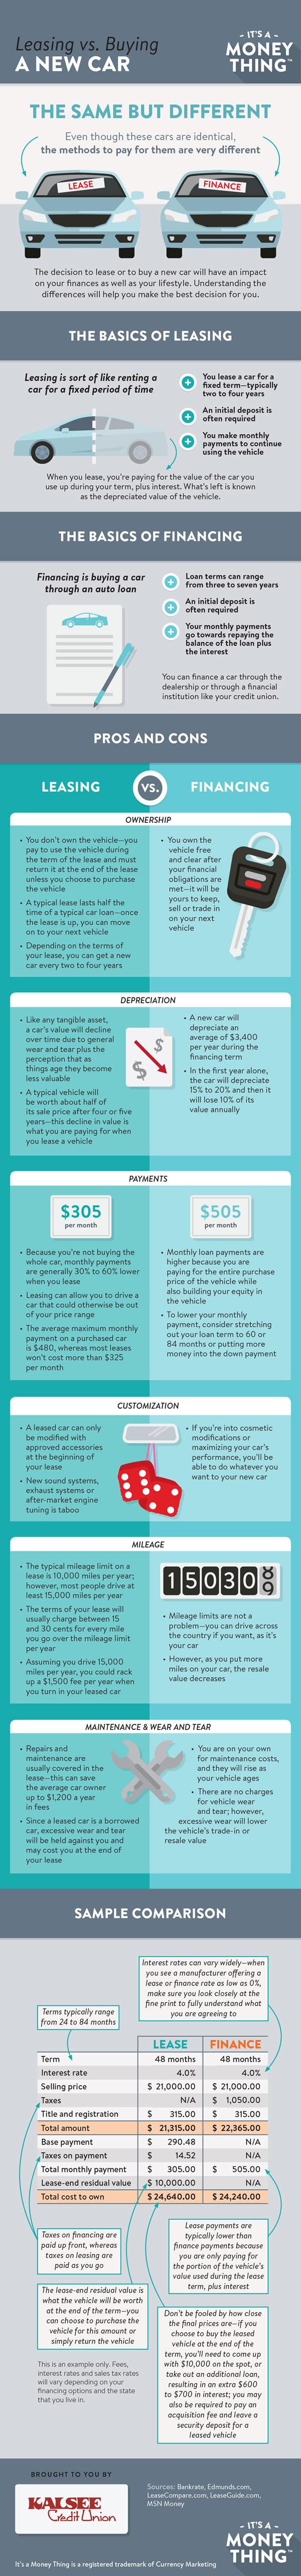 Leasing vs buying a new car infographic, click for transcription